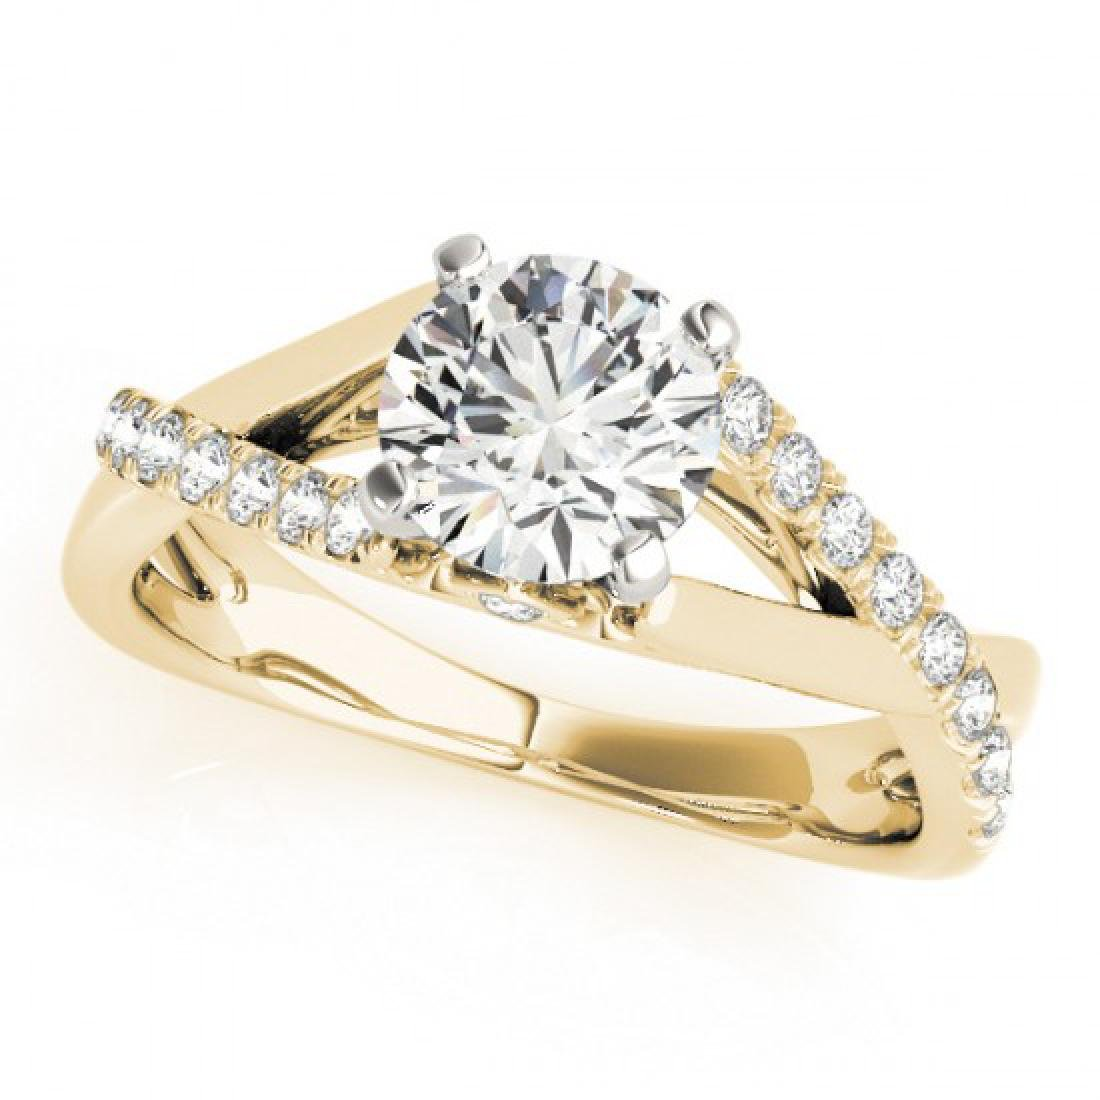 0.77 CTW Certified VS/SI Diamond Solitaire Ring 14K